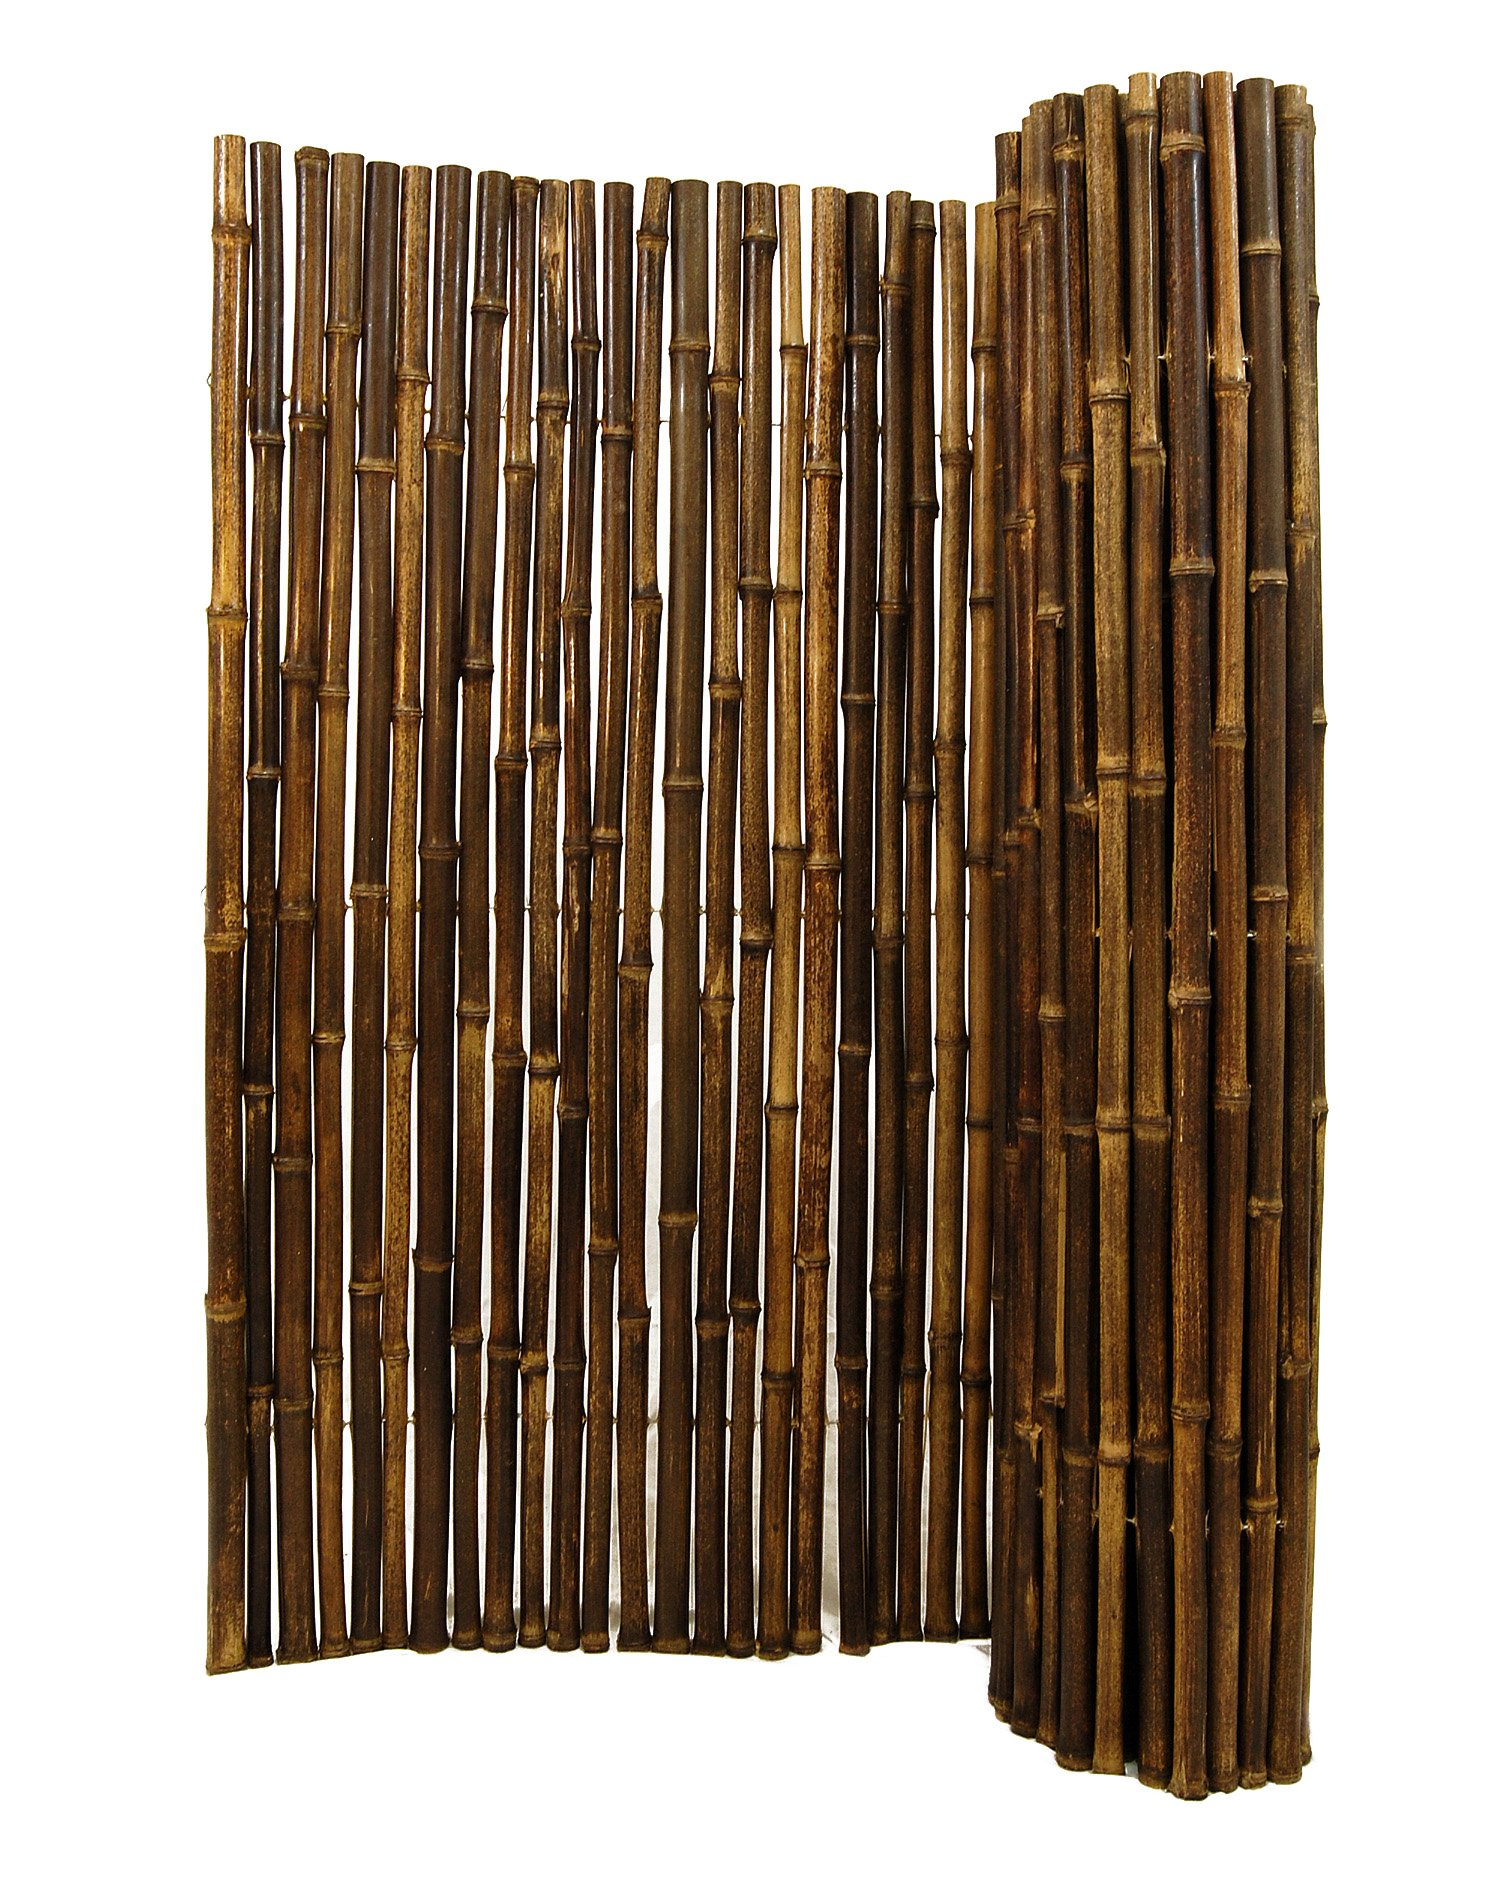 Natural Black Rolled Bamboo Fencing 1'' x 3' x 8'